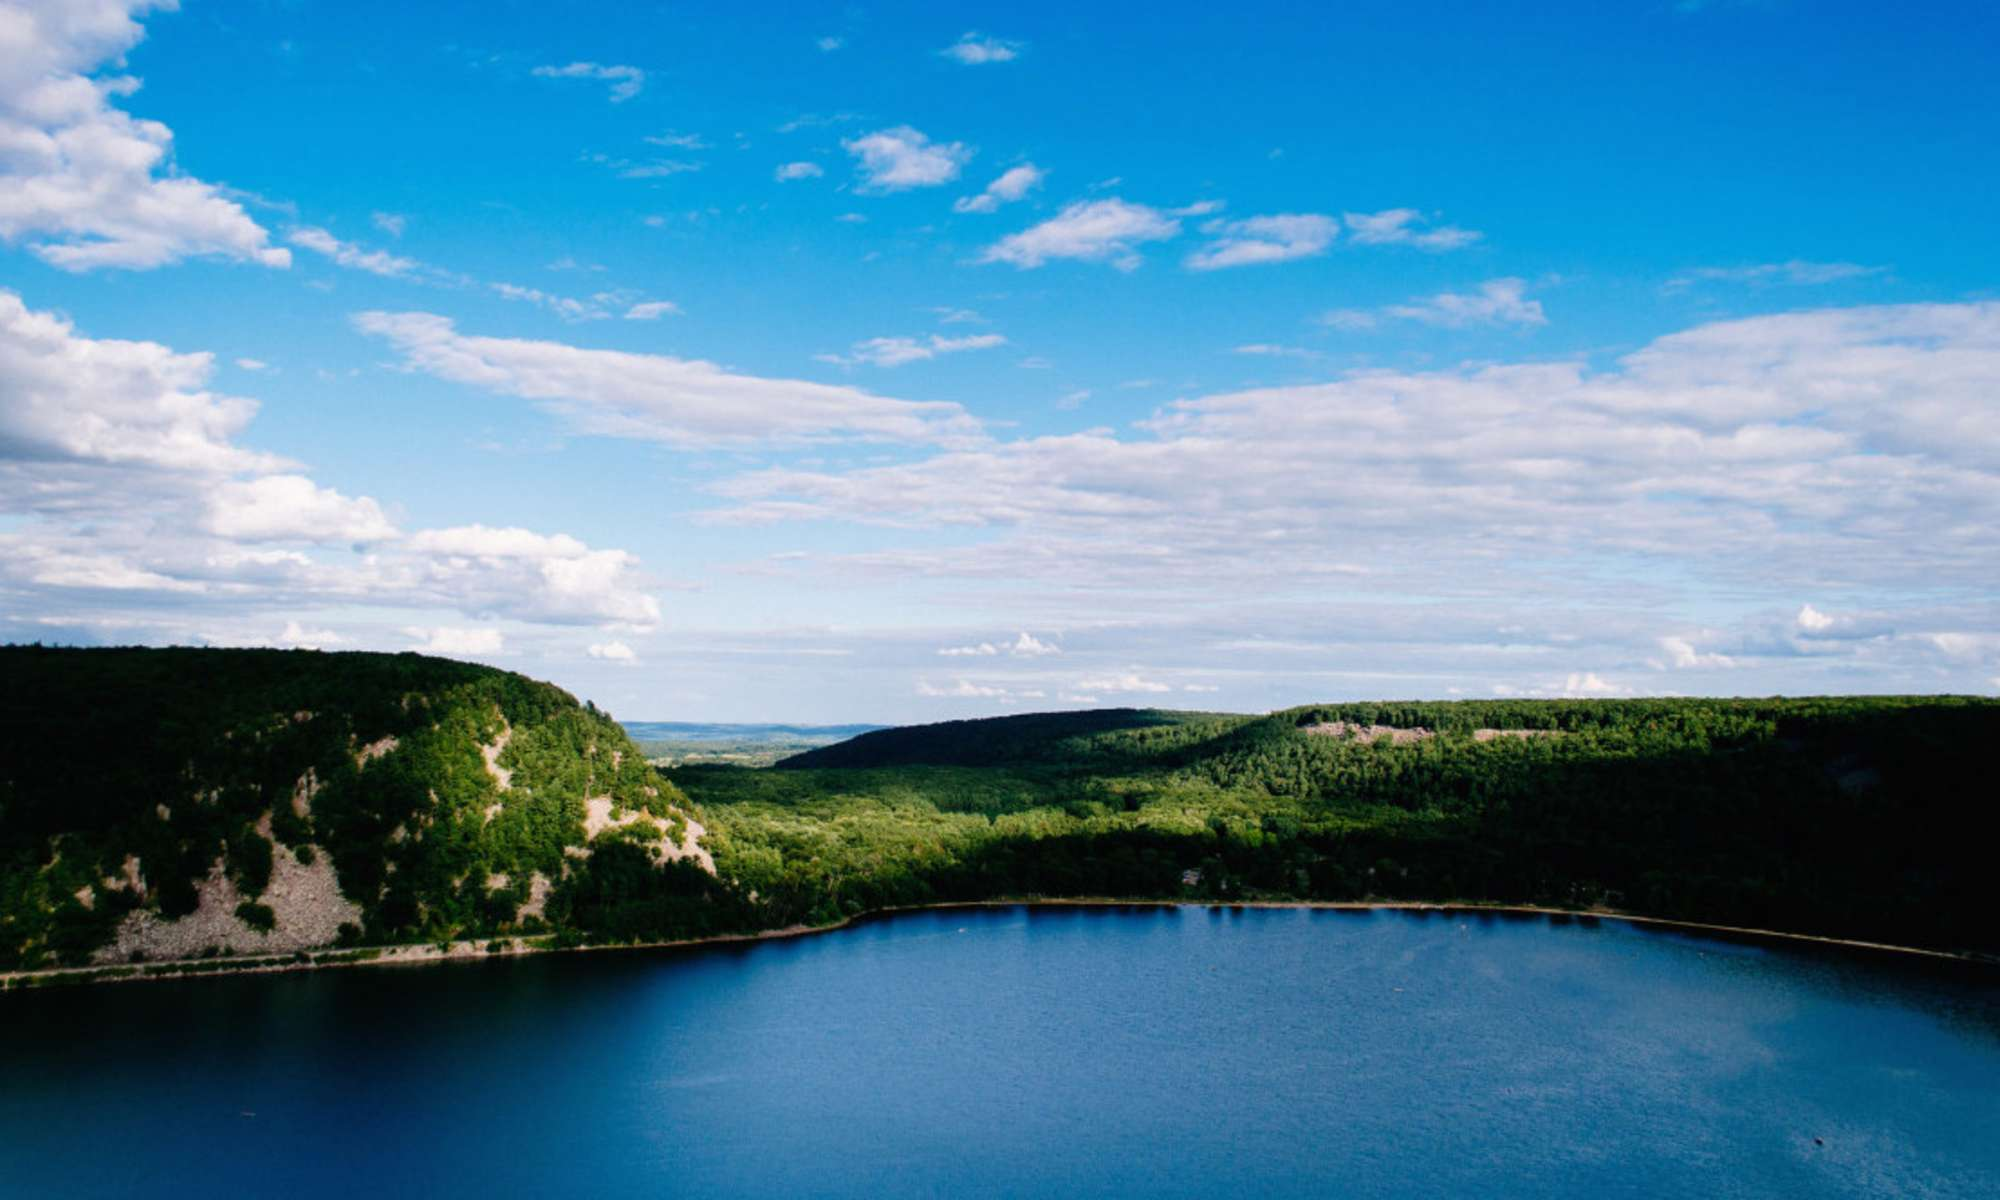 Parks And Rec: The 5 Best State Parks in Wisconsin